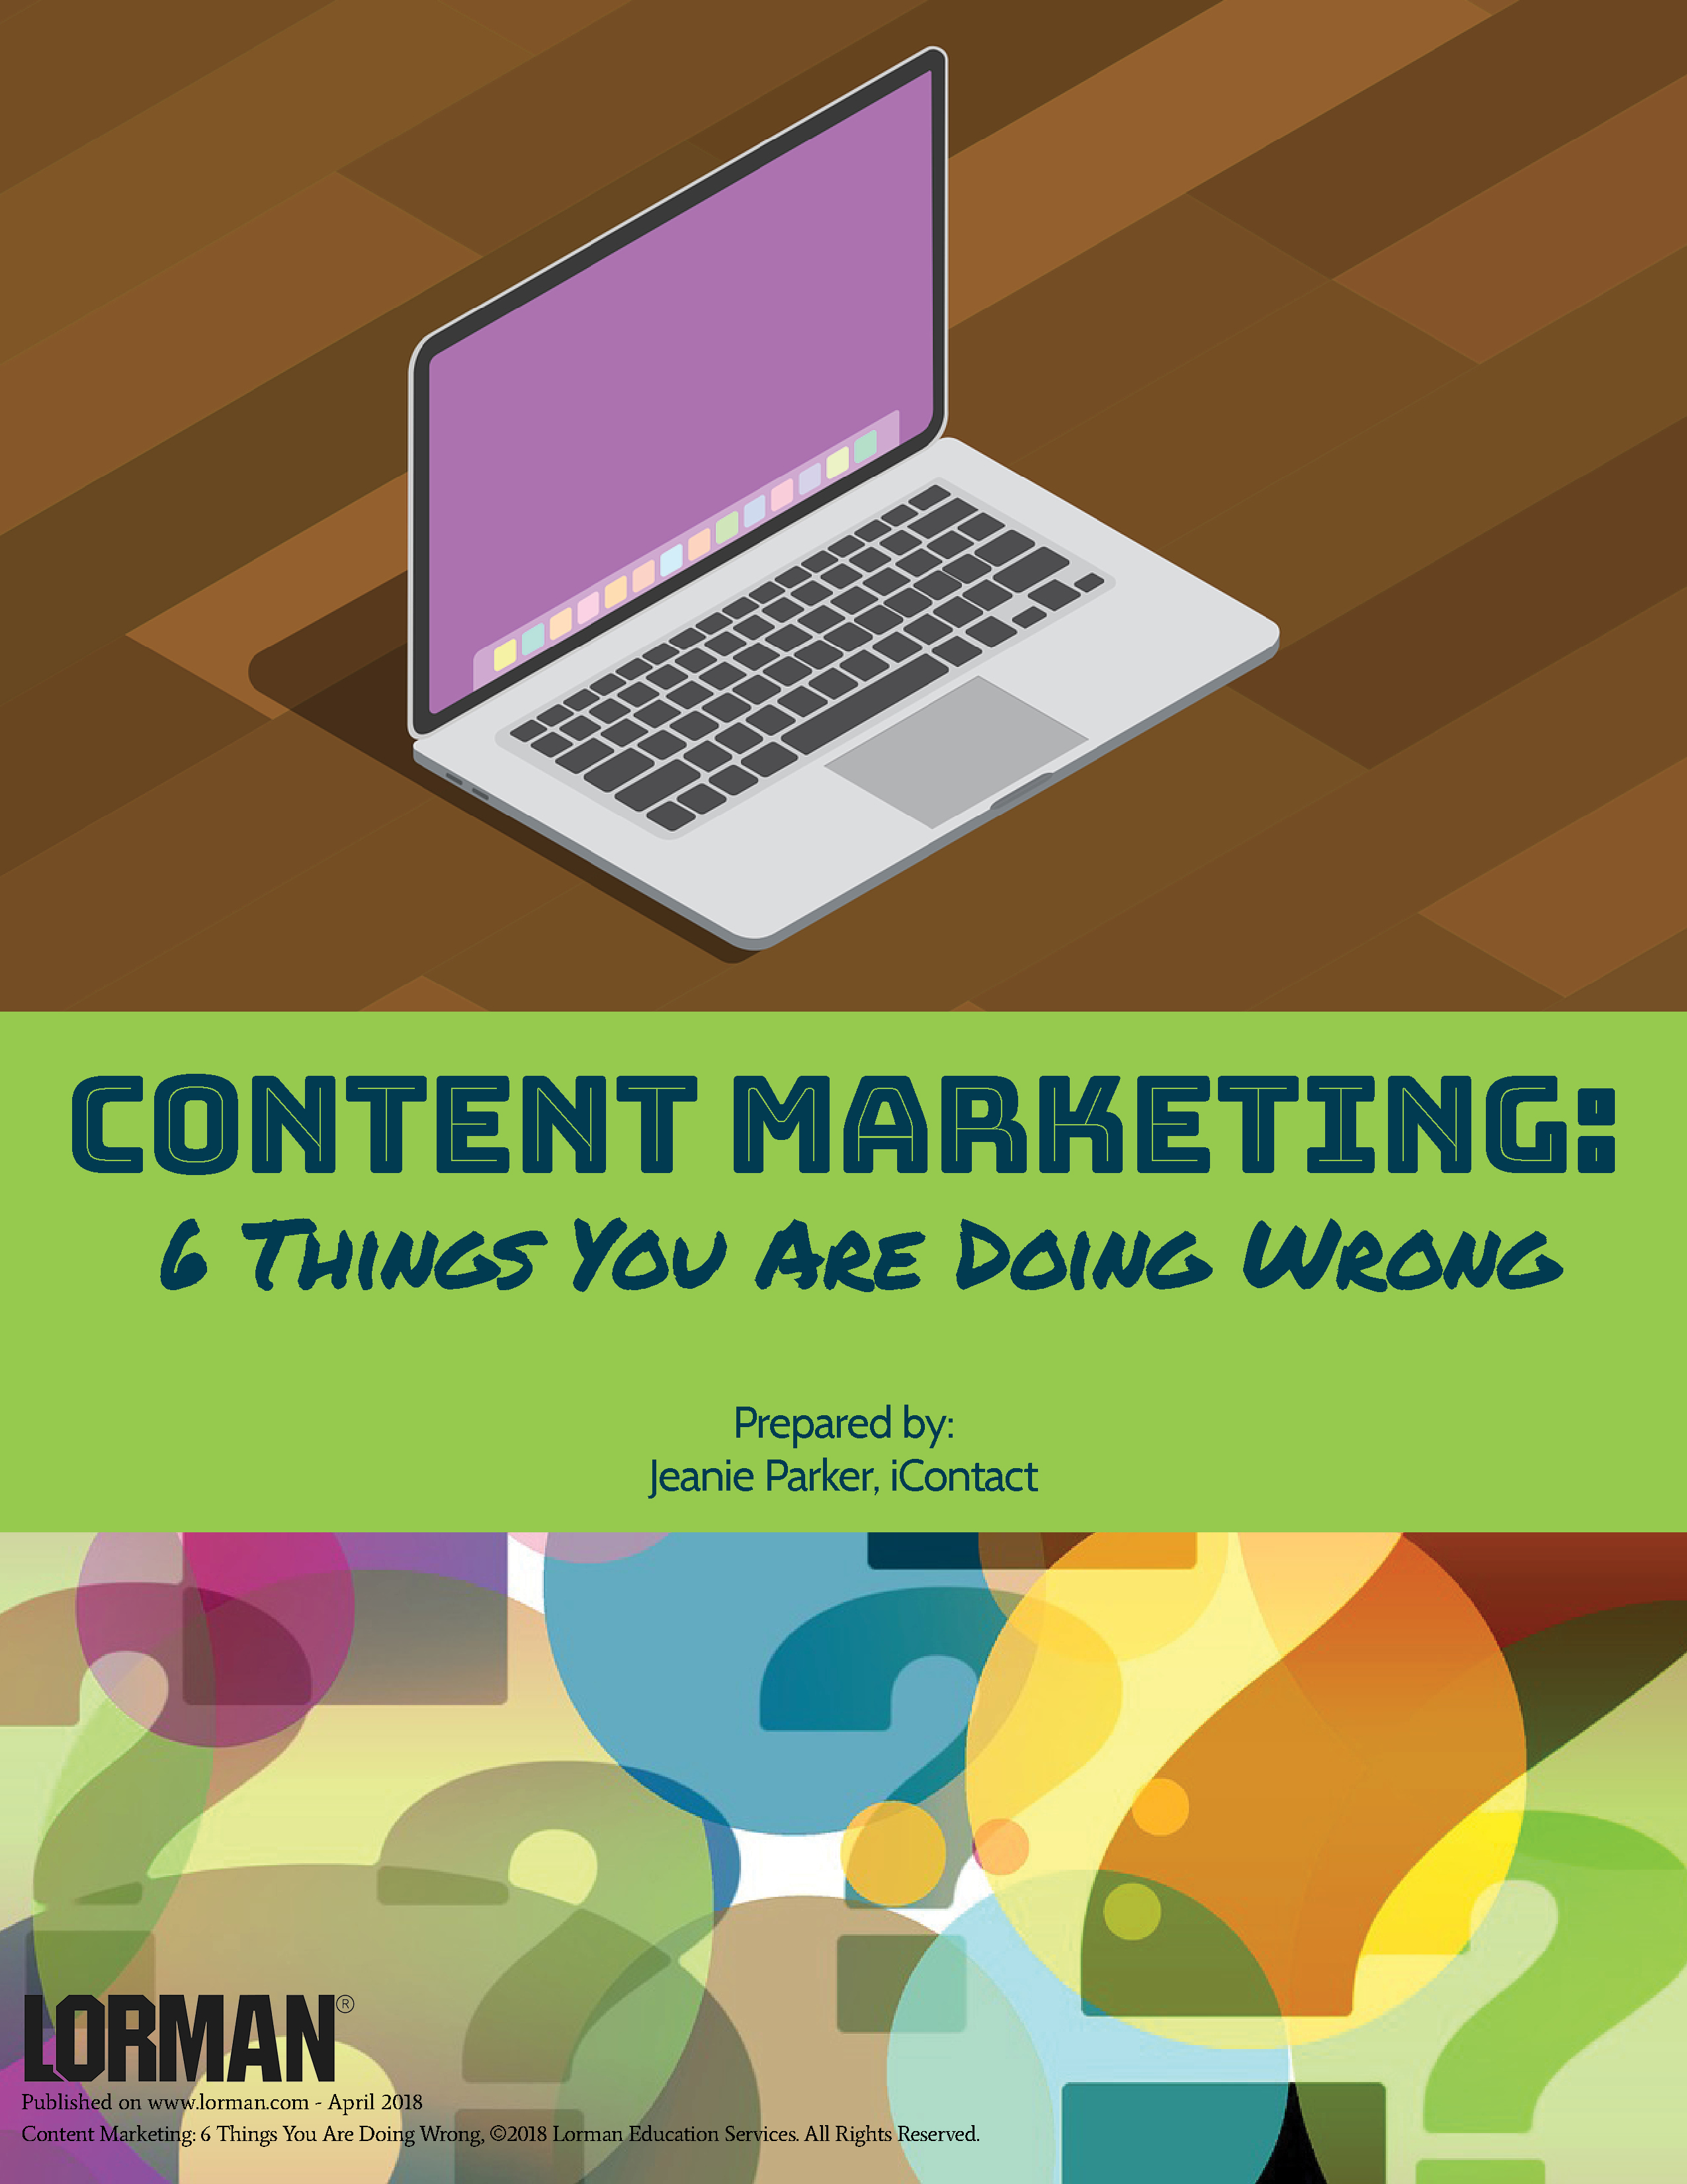 Content Marketing: 6 Things You Are Doing Wrong